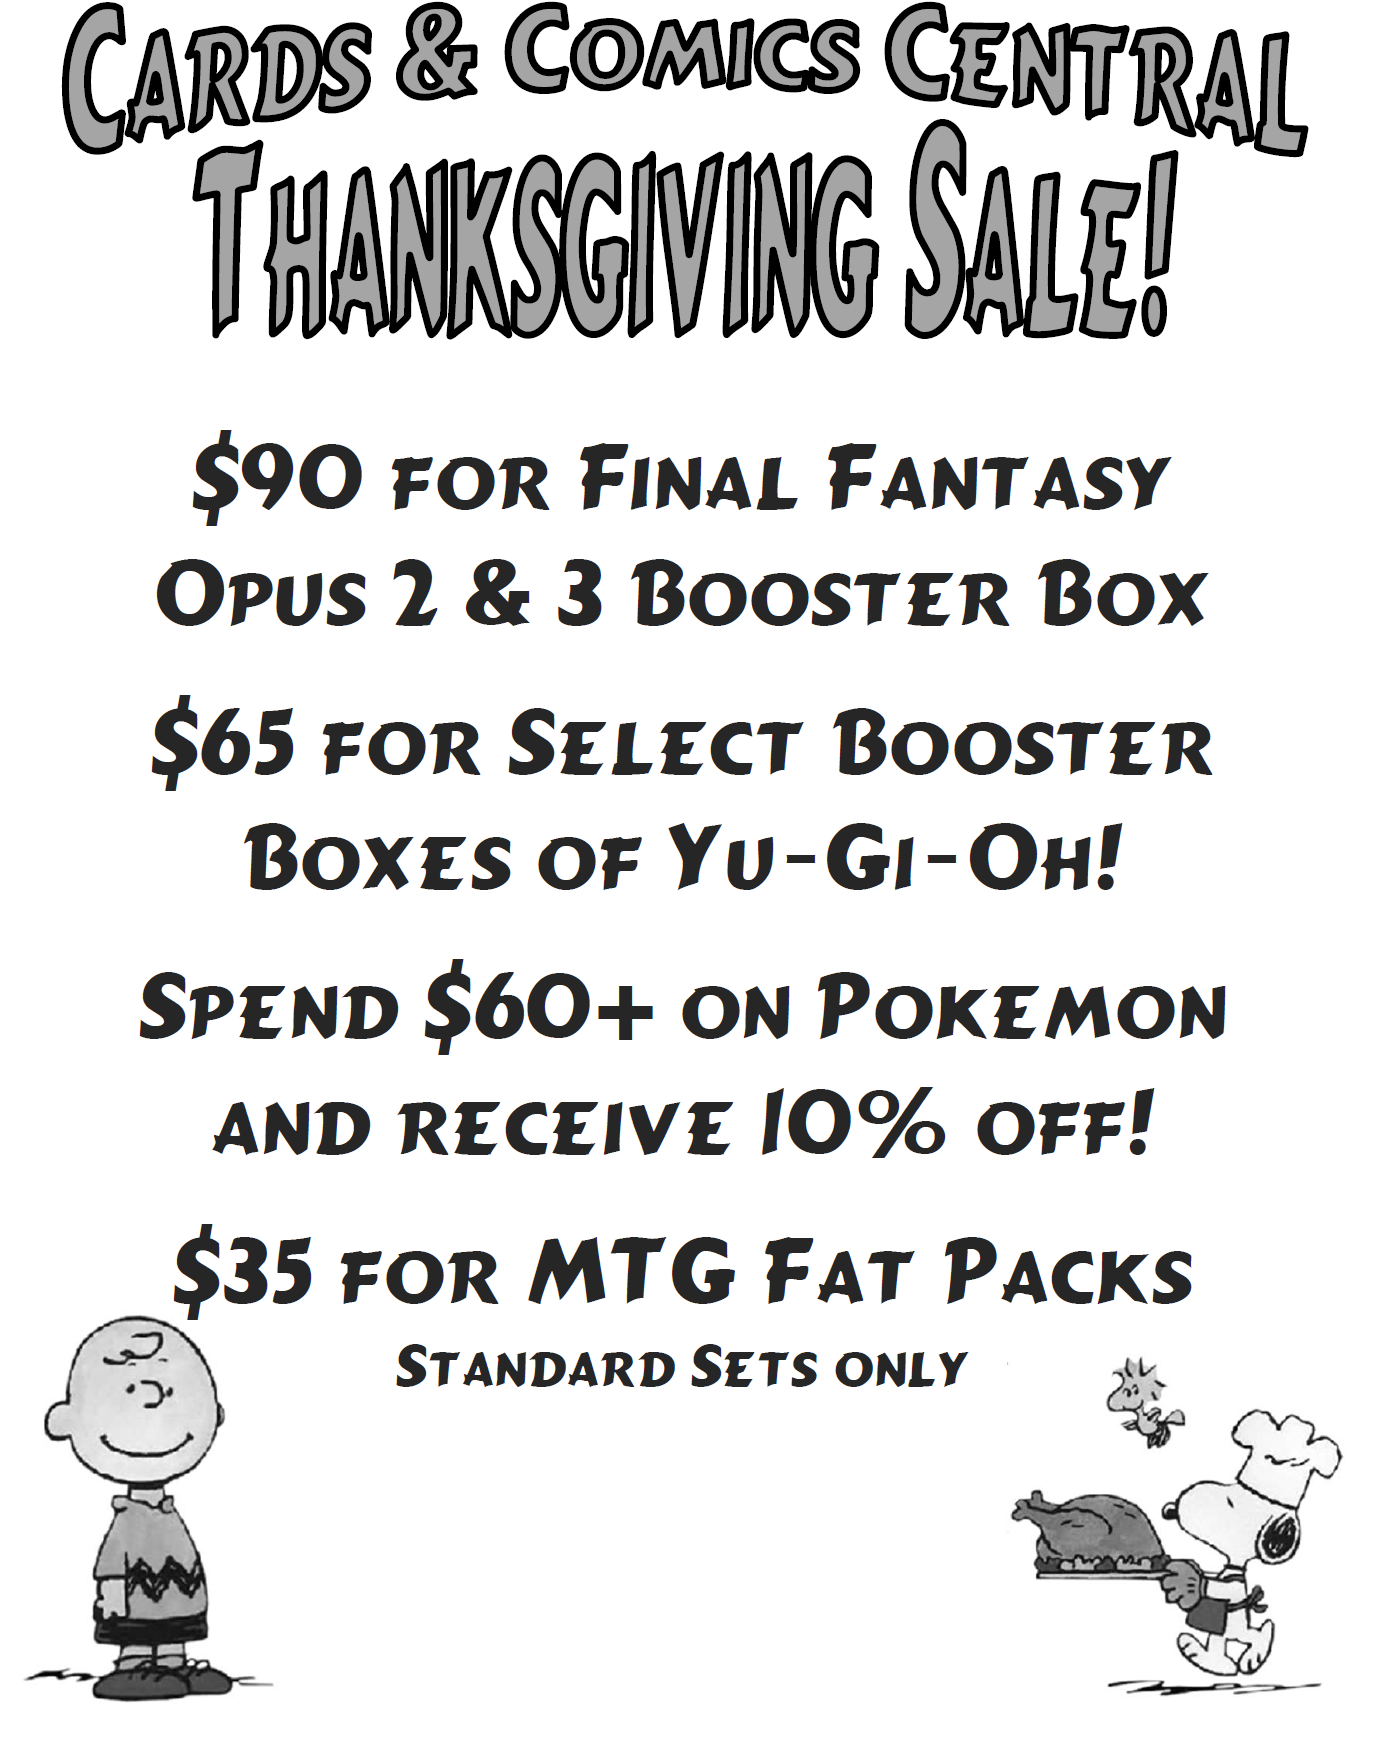 ThanksgivingSale_CARDS.png